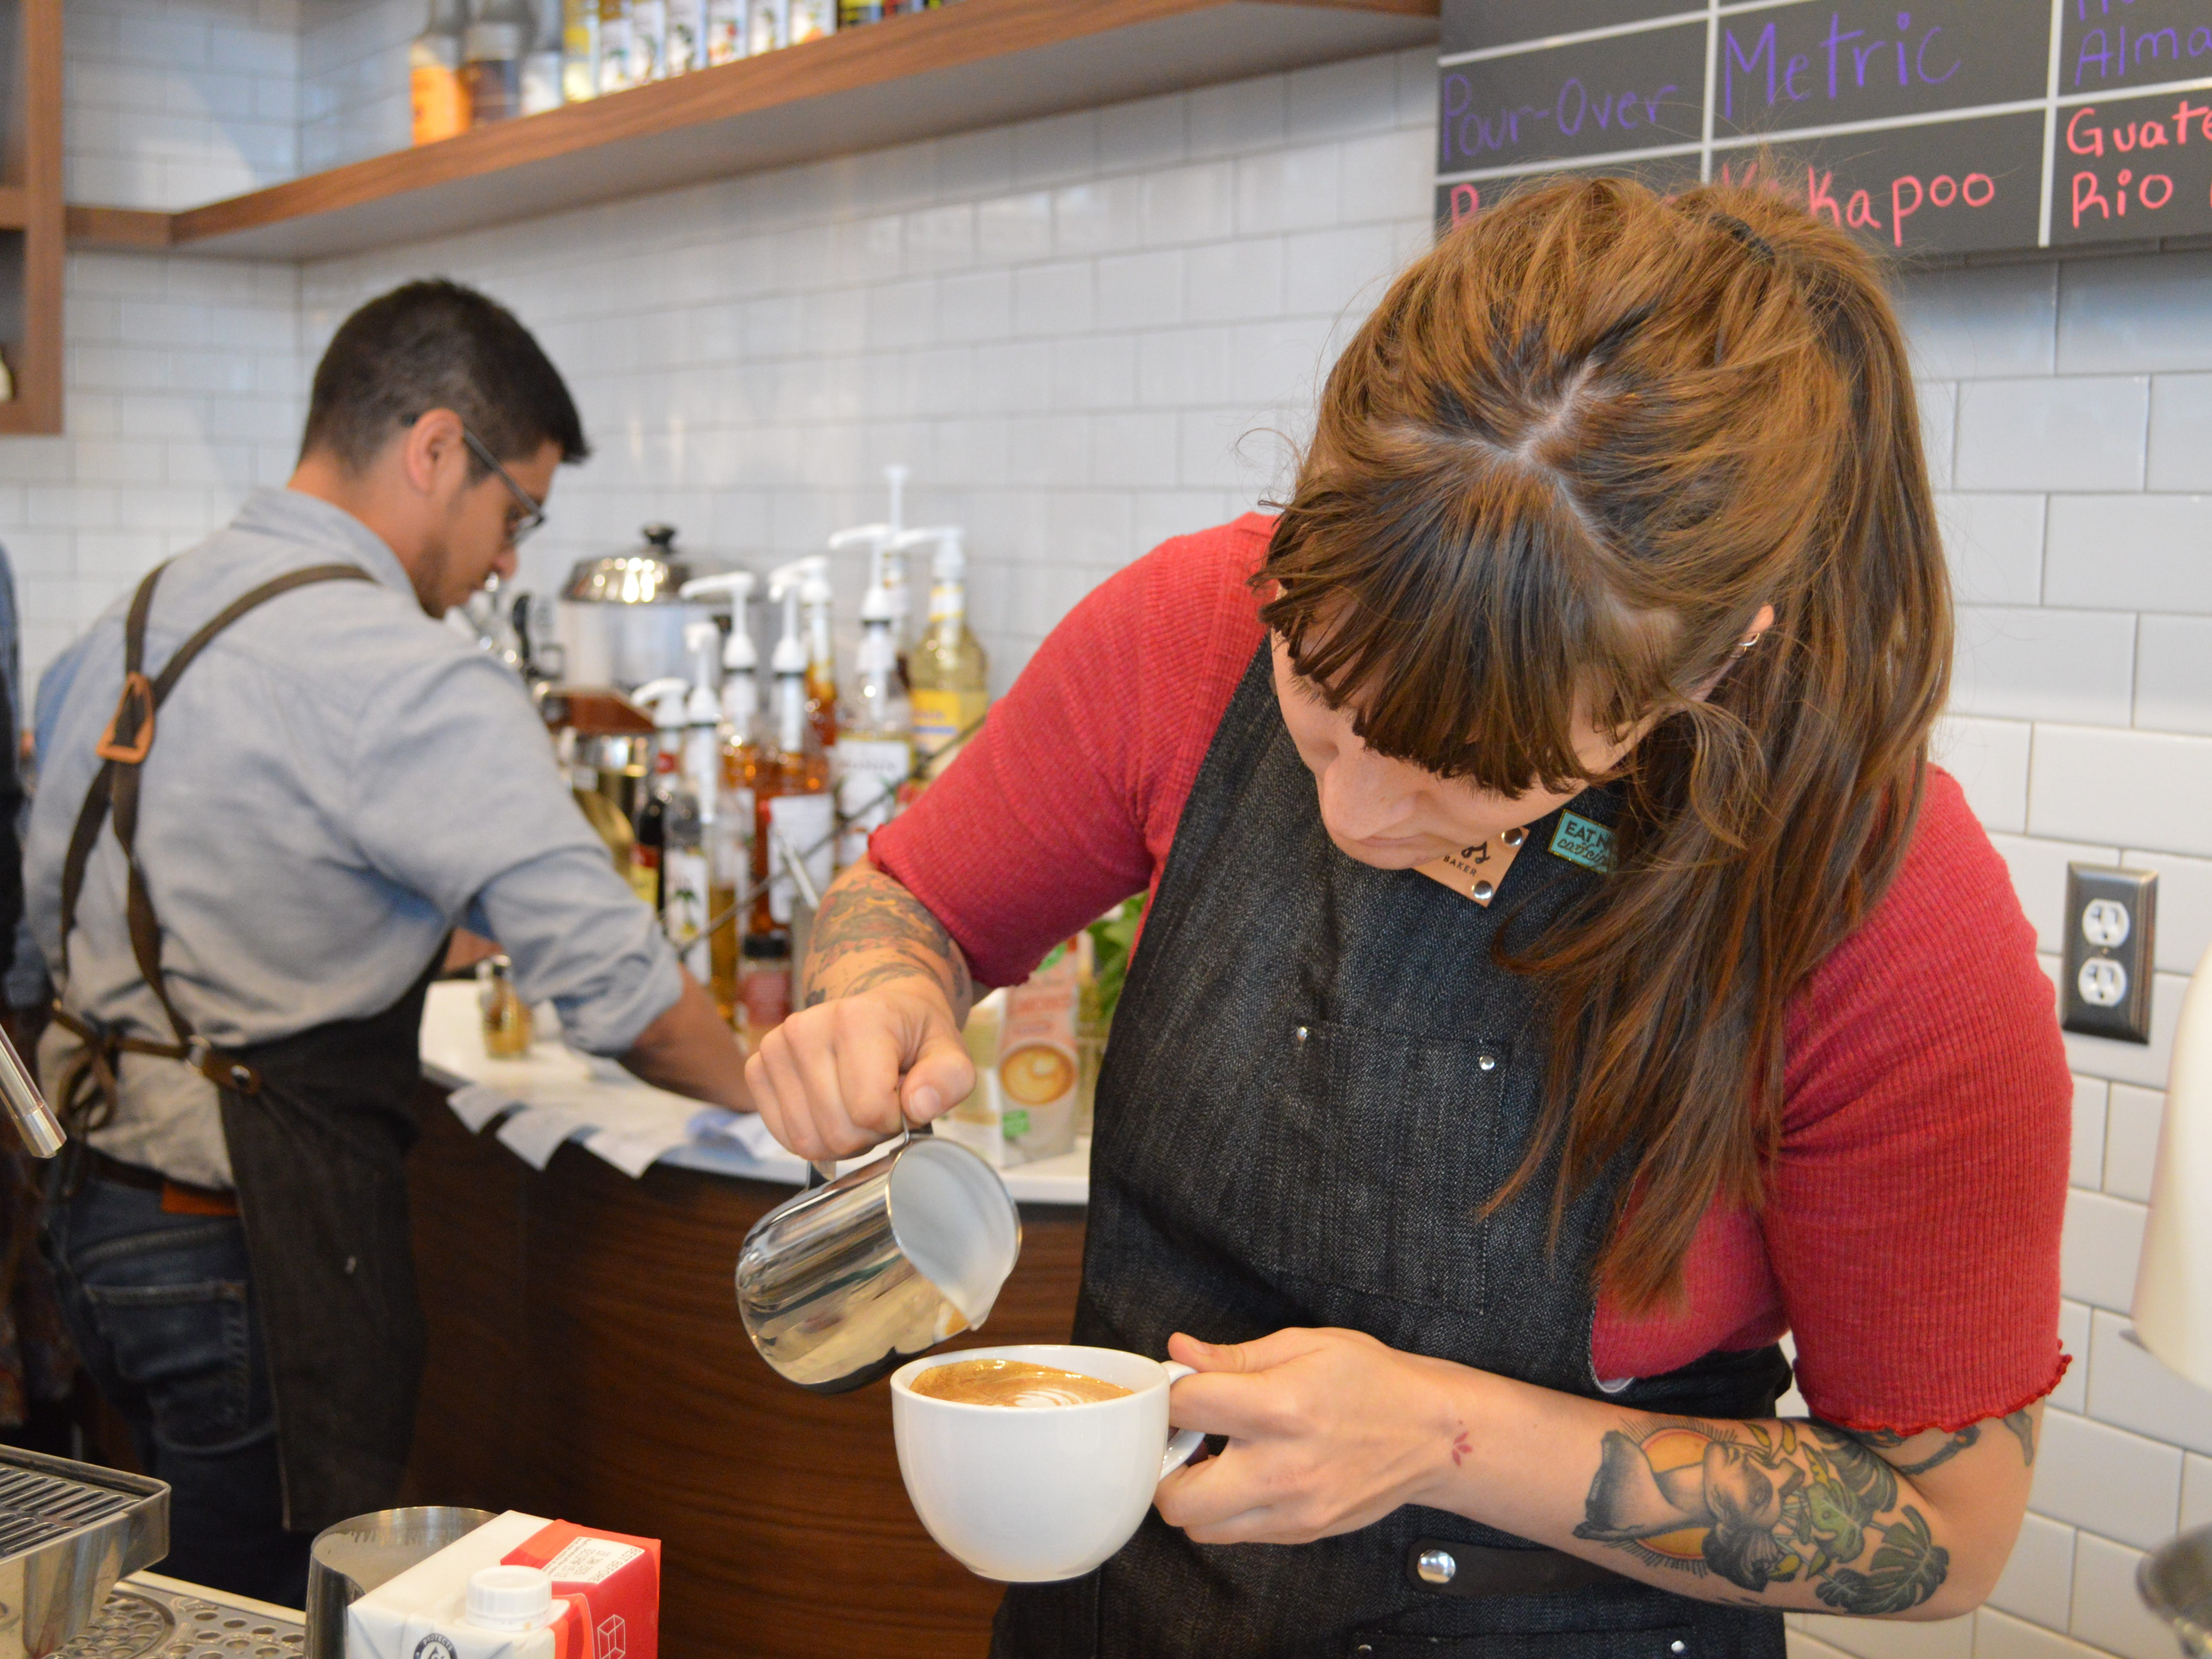 Georgia Tookey, consultant and trainer, said Brookfield is a coffee dessert, so Goddess and The Baker is filling a need the area doesn't have.